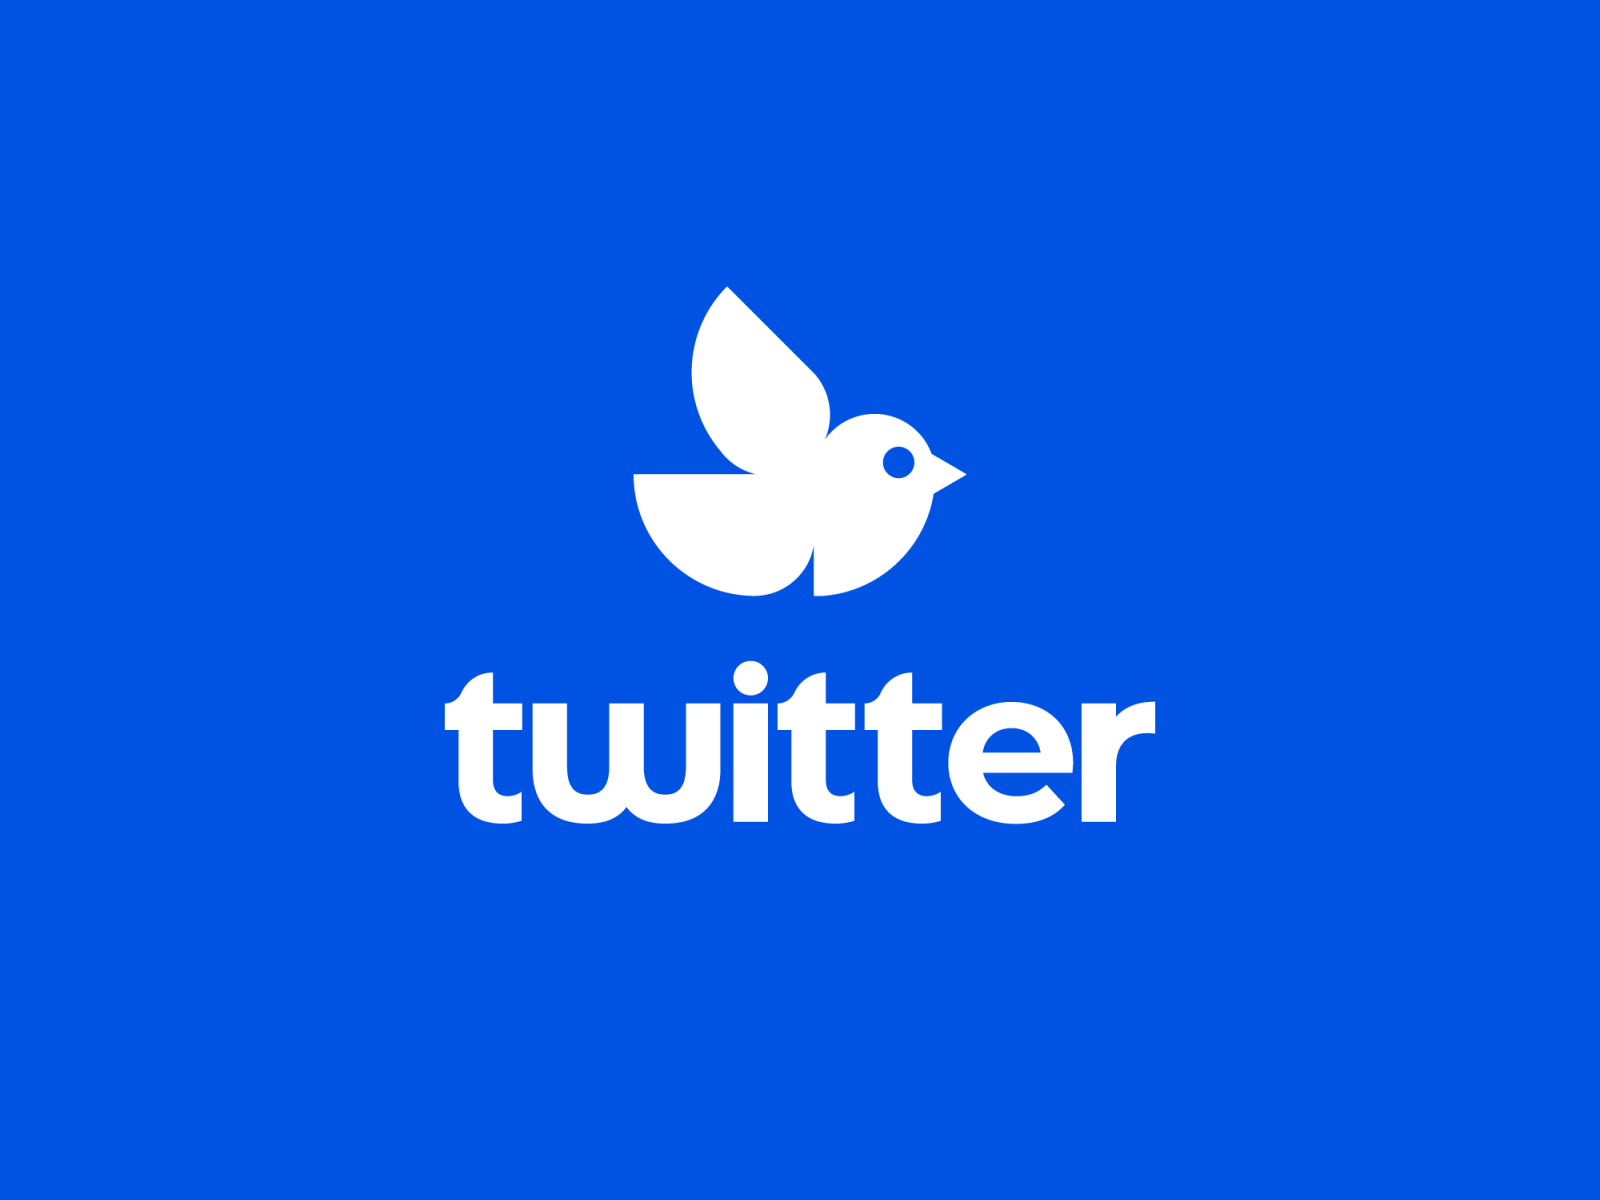 Twitter Logo Proposal (For Fun) by Myles Stockdale